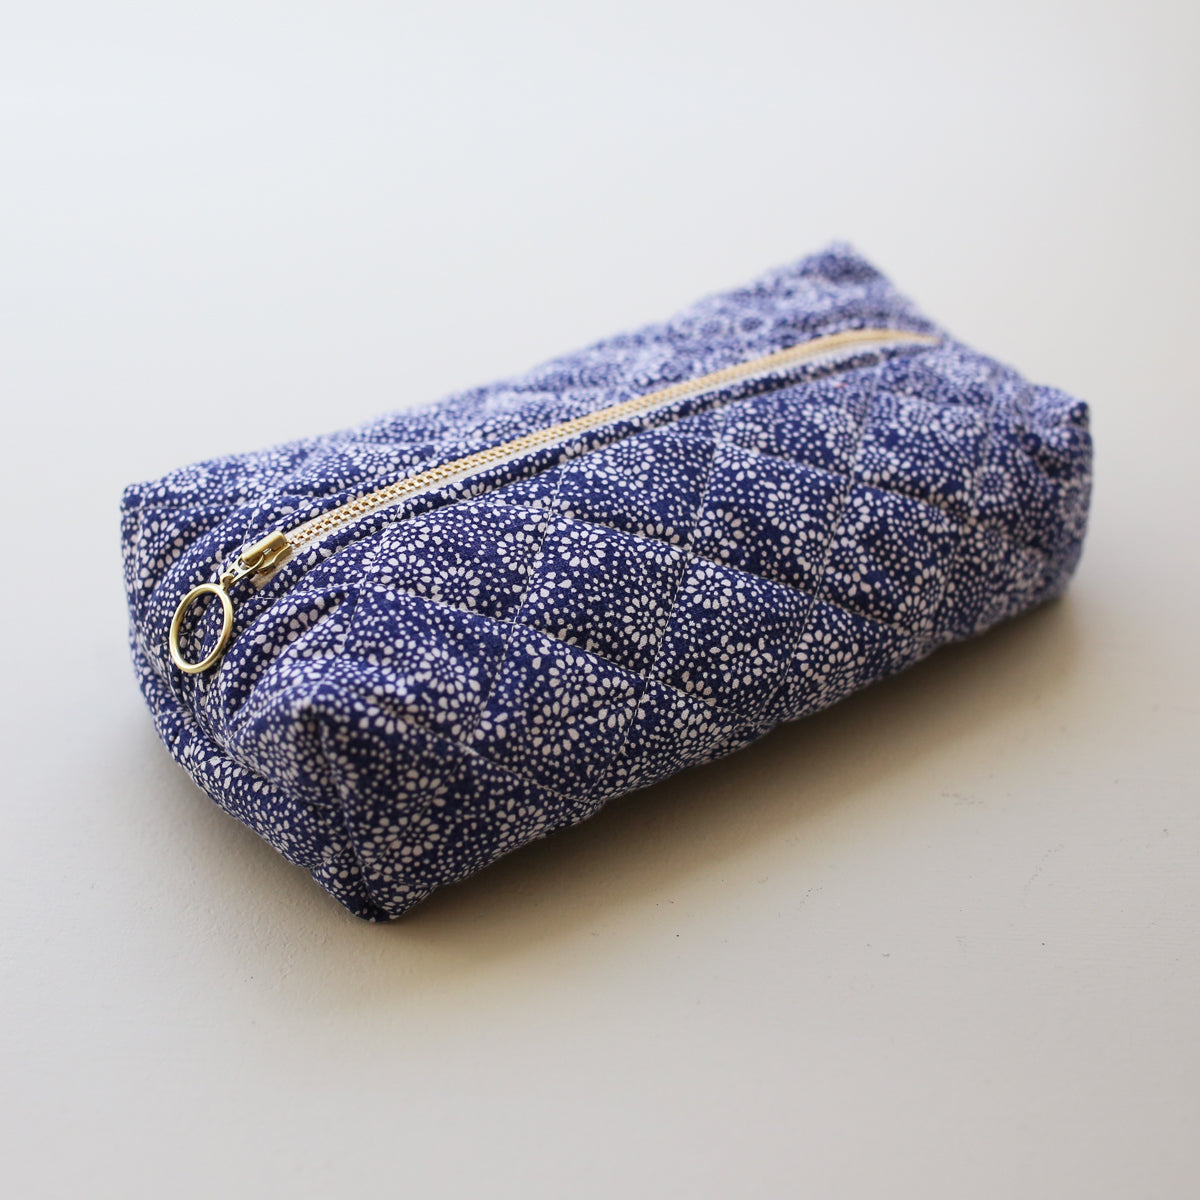 MAKEUP BAG // DARK BLUE